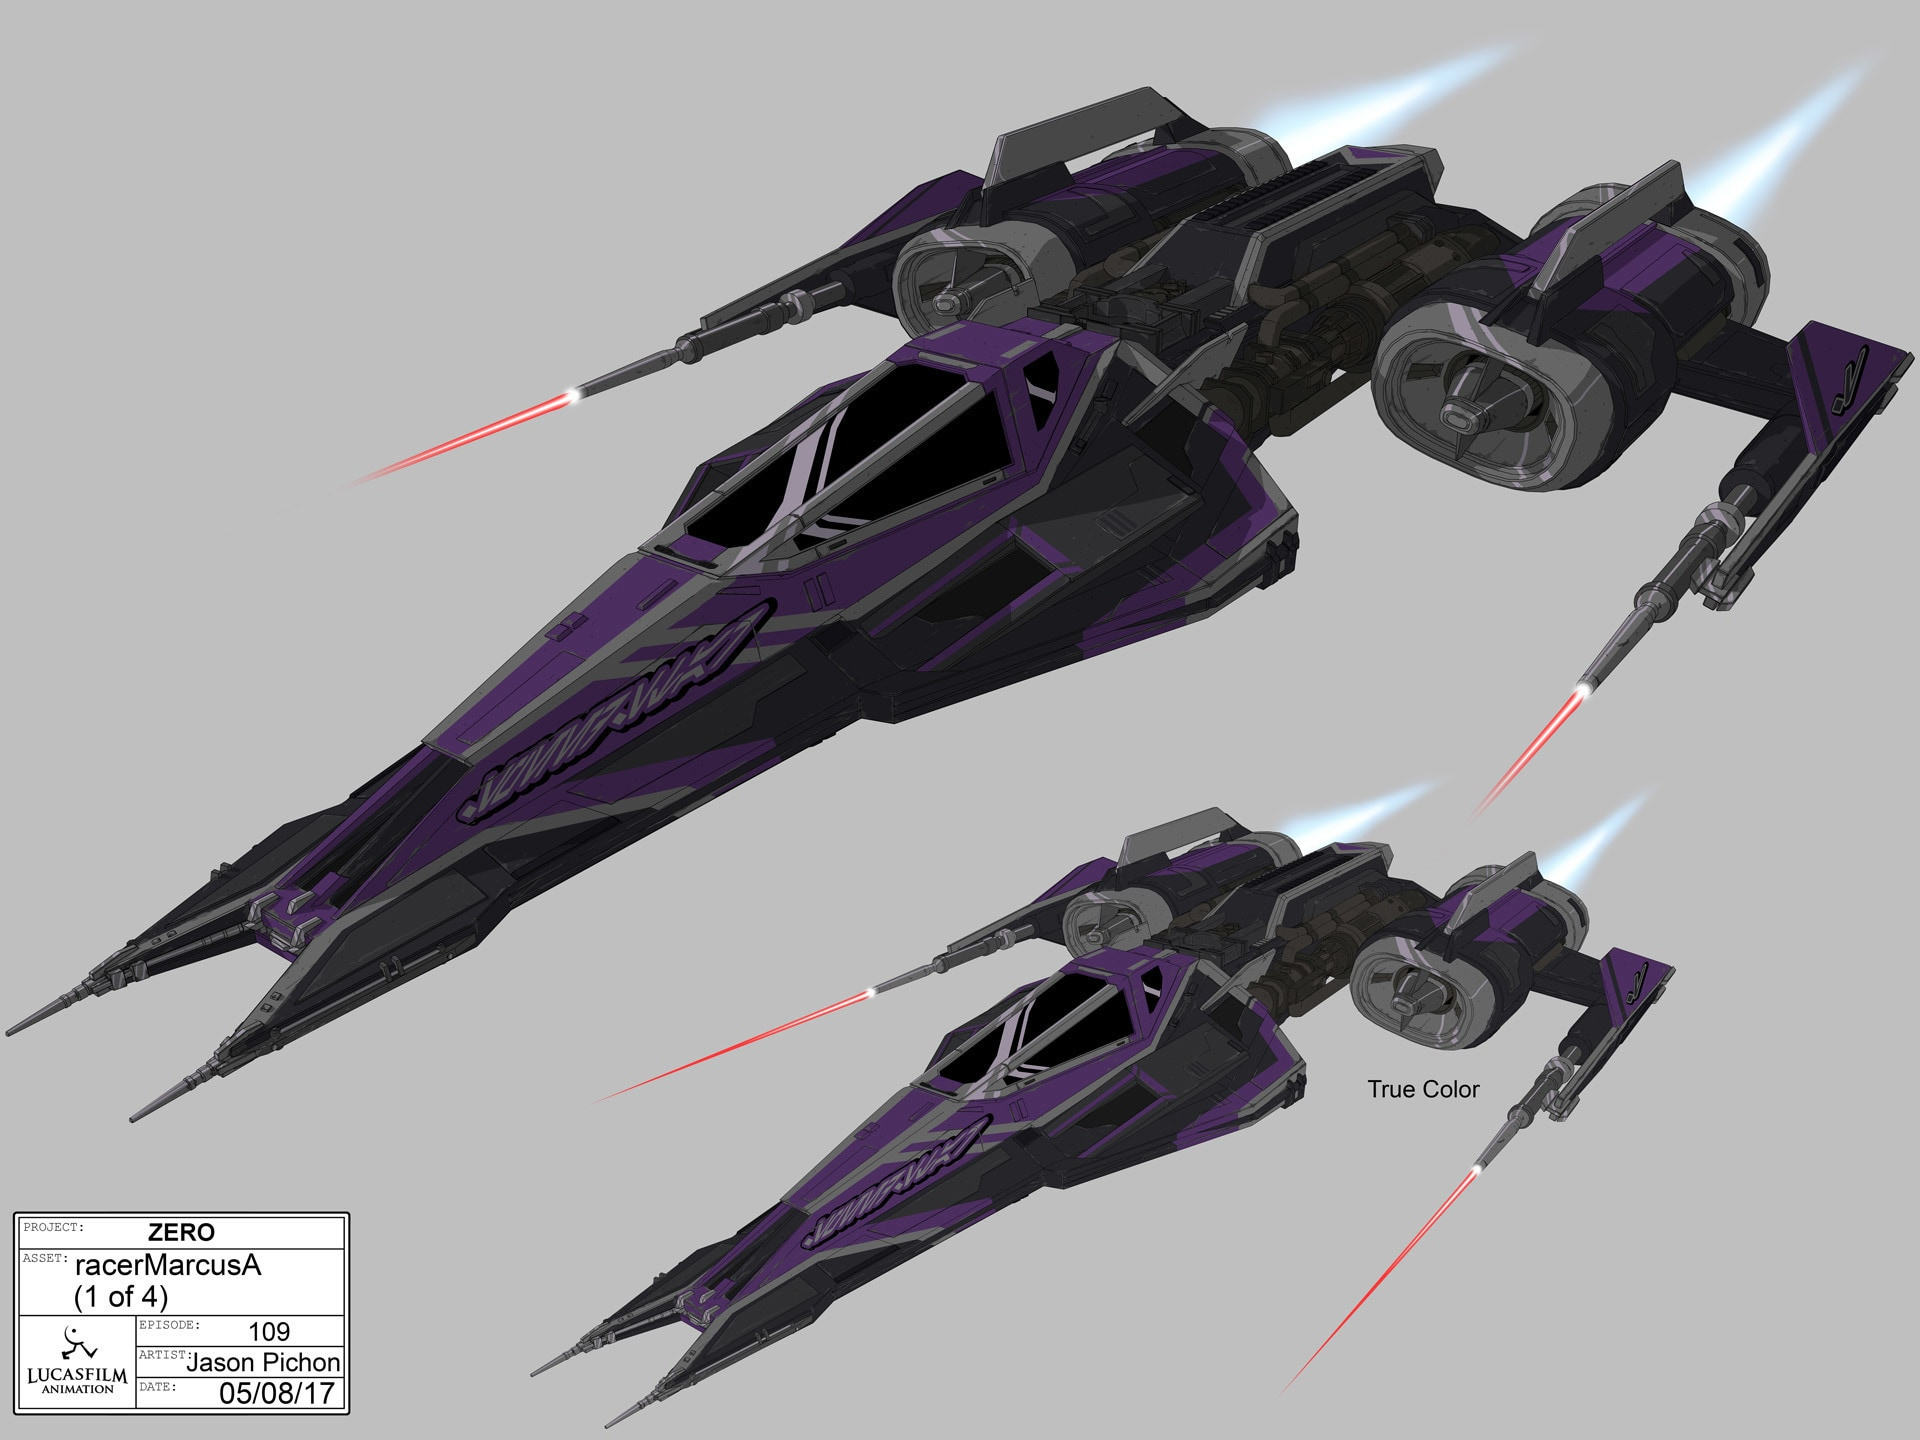 resistance-db-concept-art-gallery-3_326c